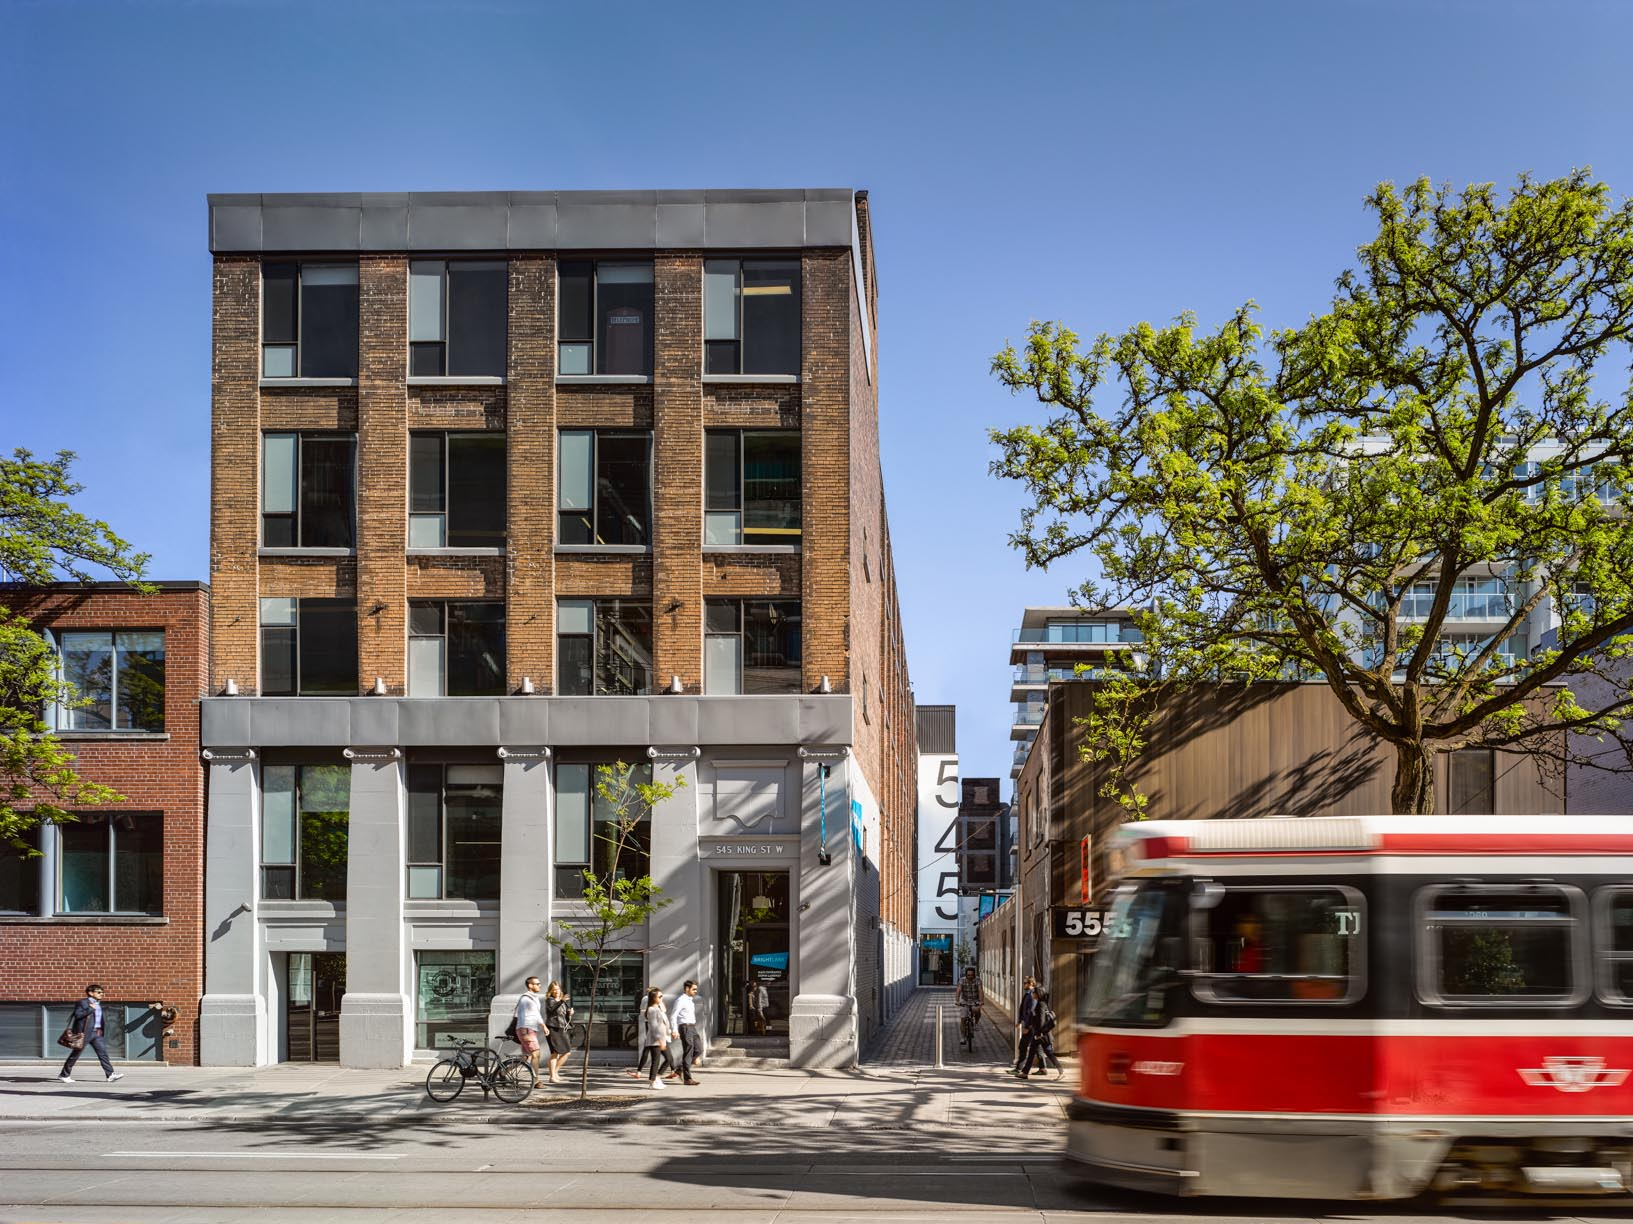 545 King West